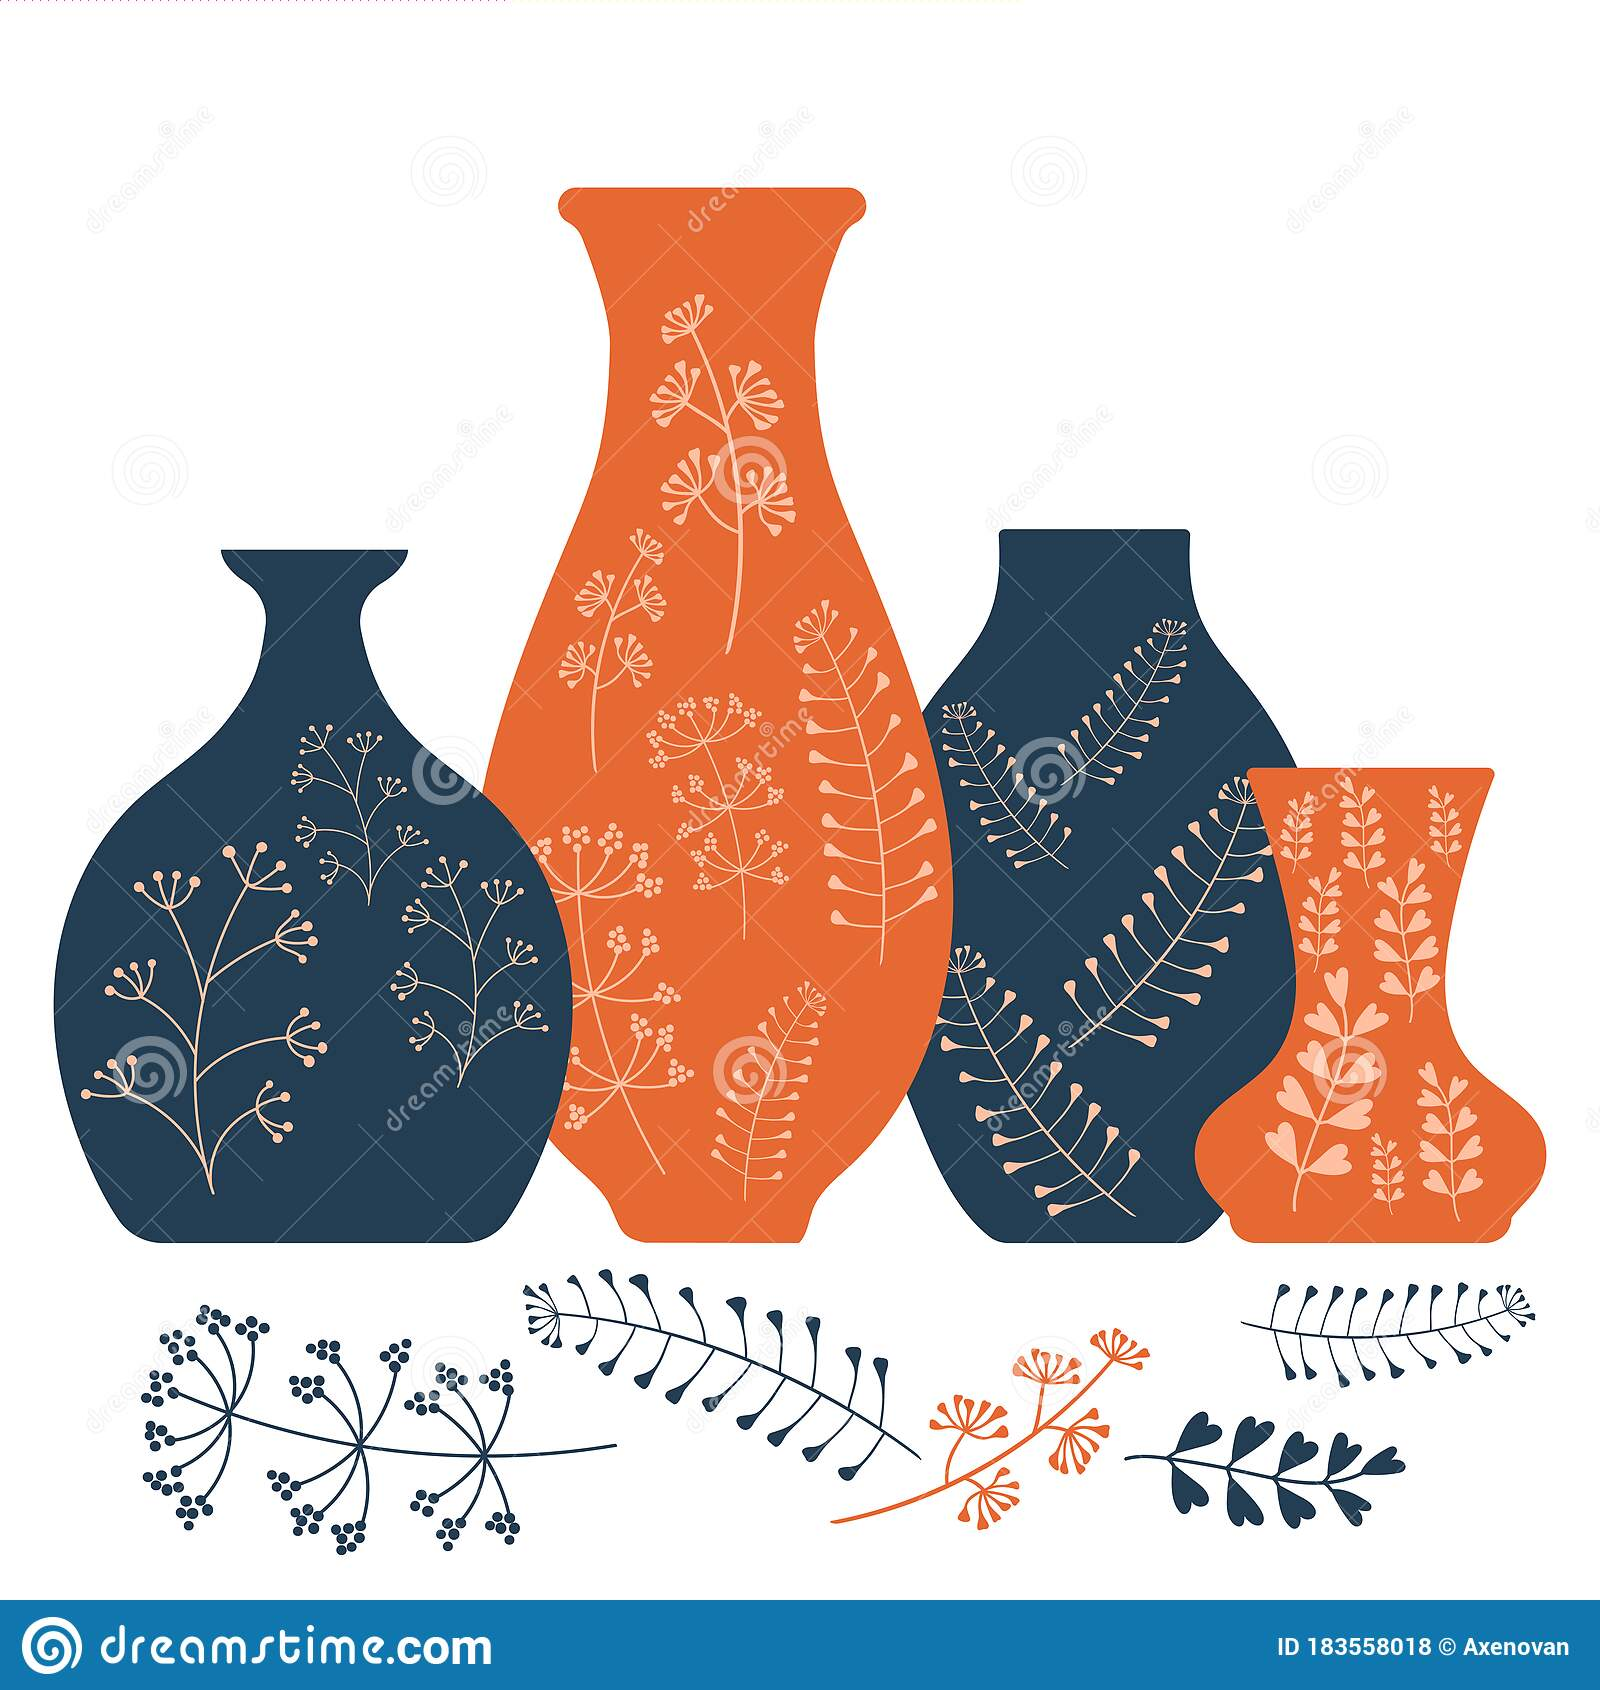 Handmade Ceramics Ceramic Vases And Pots With A Botanical Pattern Pottery Hobby Flat Vector Illustration Stock Illustration Illustration Of Earthenware Character 183558018